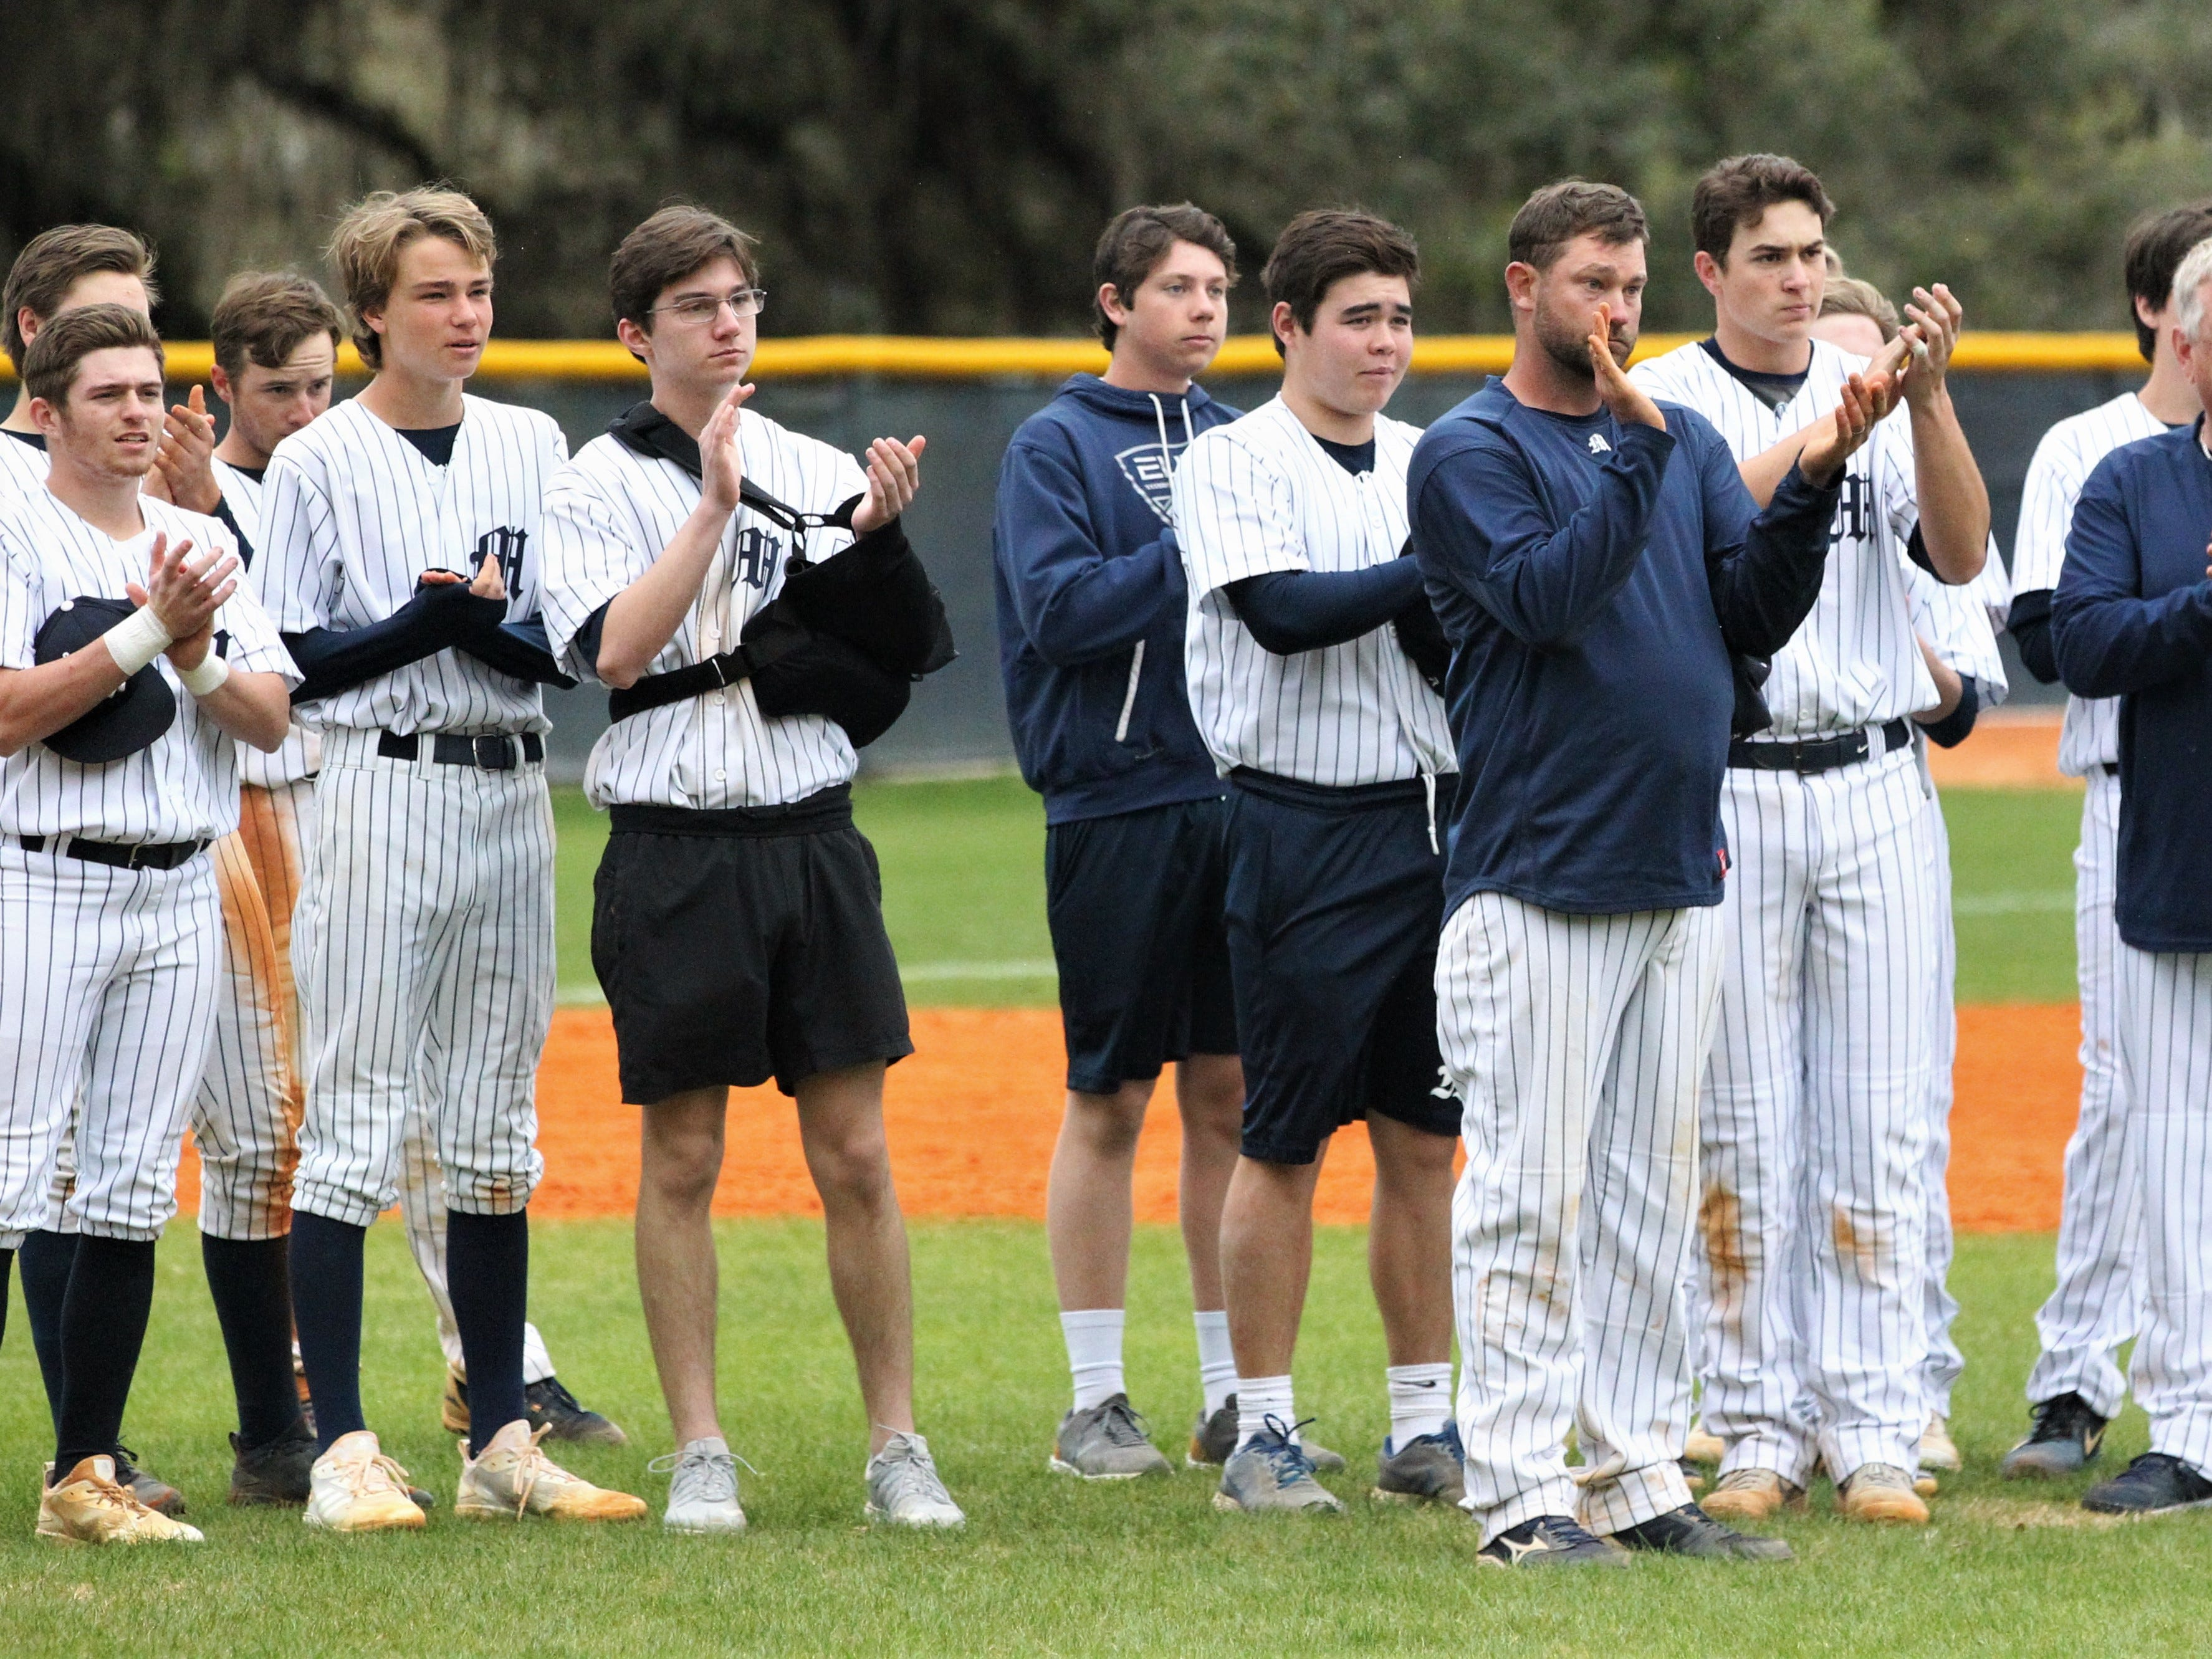 Maclay baseball coach Drew Sherrod leads his team in applause of Liberty County's baseball team, which won 8-2 just six days after its head coach's tragic death.